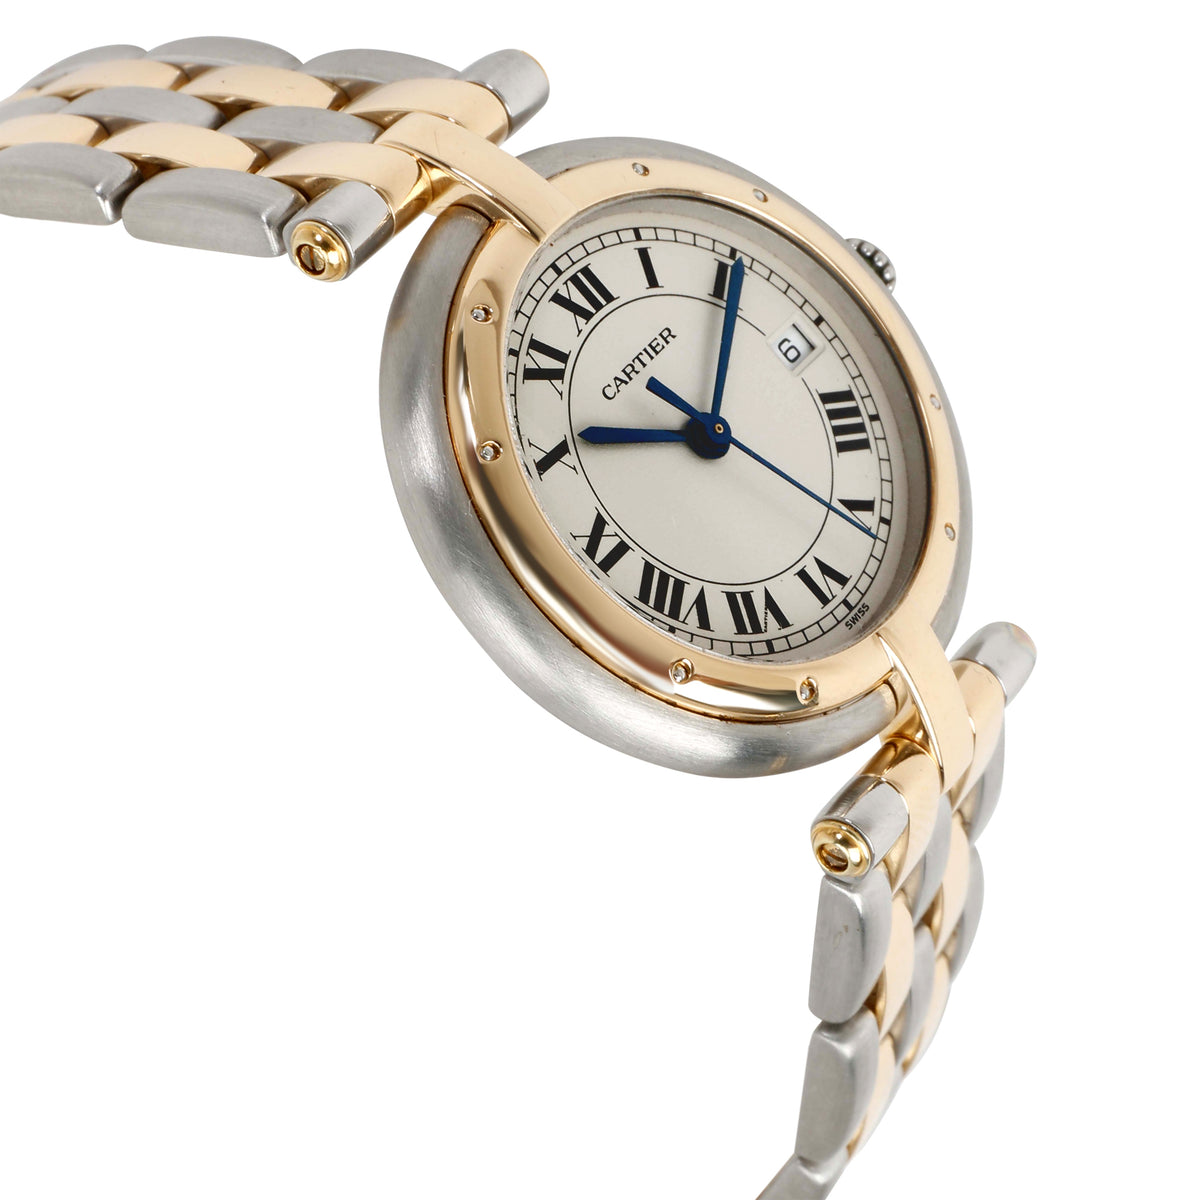 Cartier Panthere 183964 Unisex Watch in 18kt Stainless Steel/Yellow Gold